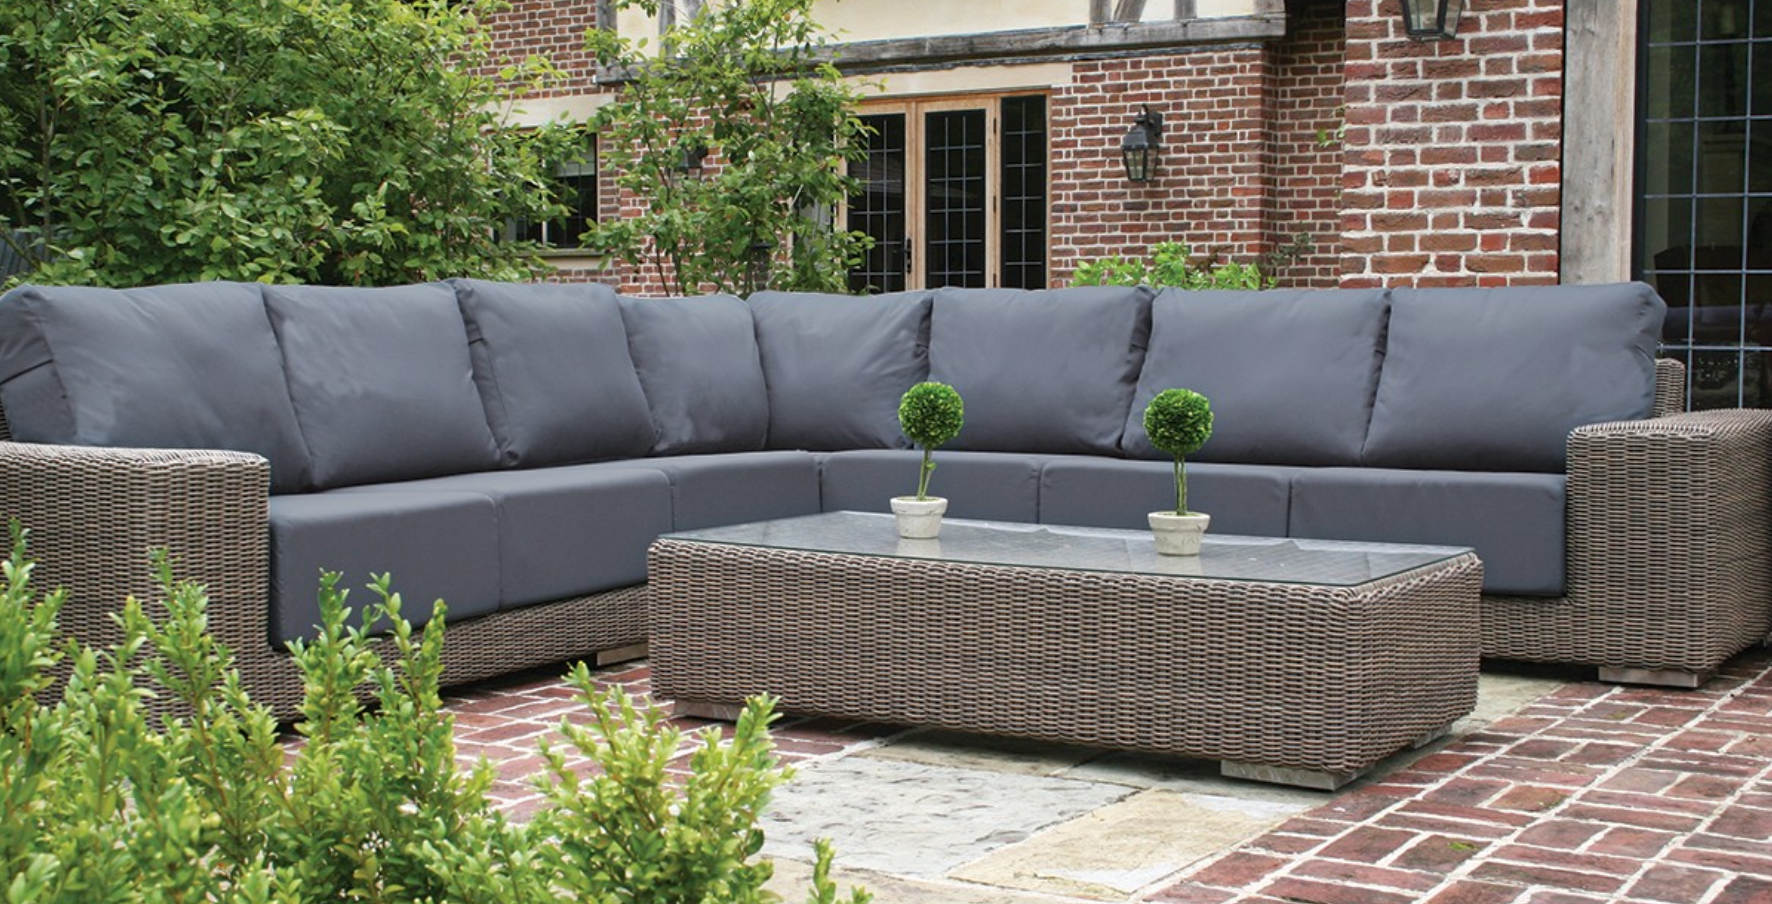 Bridgman Garden Furniture Review